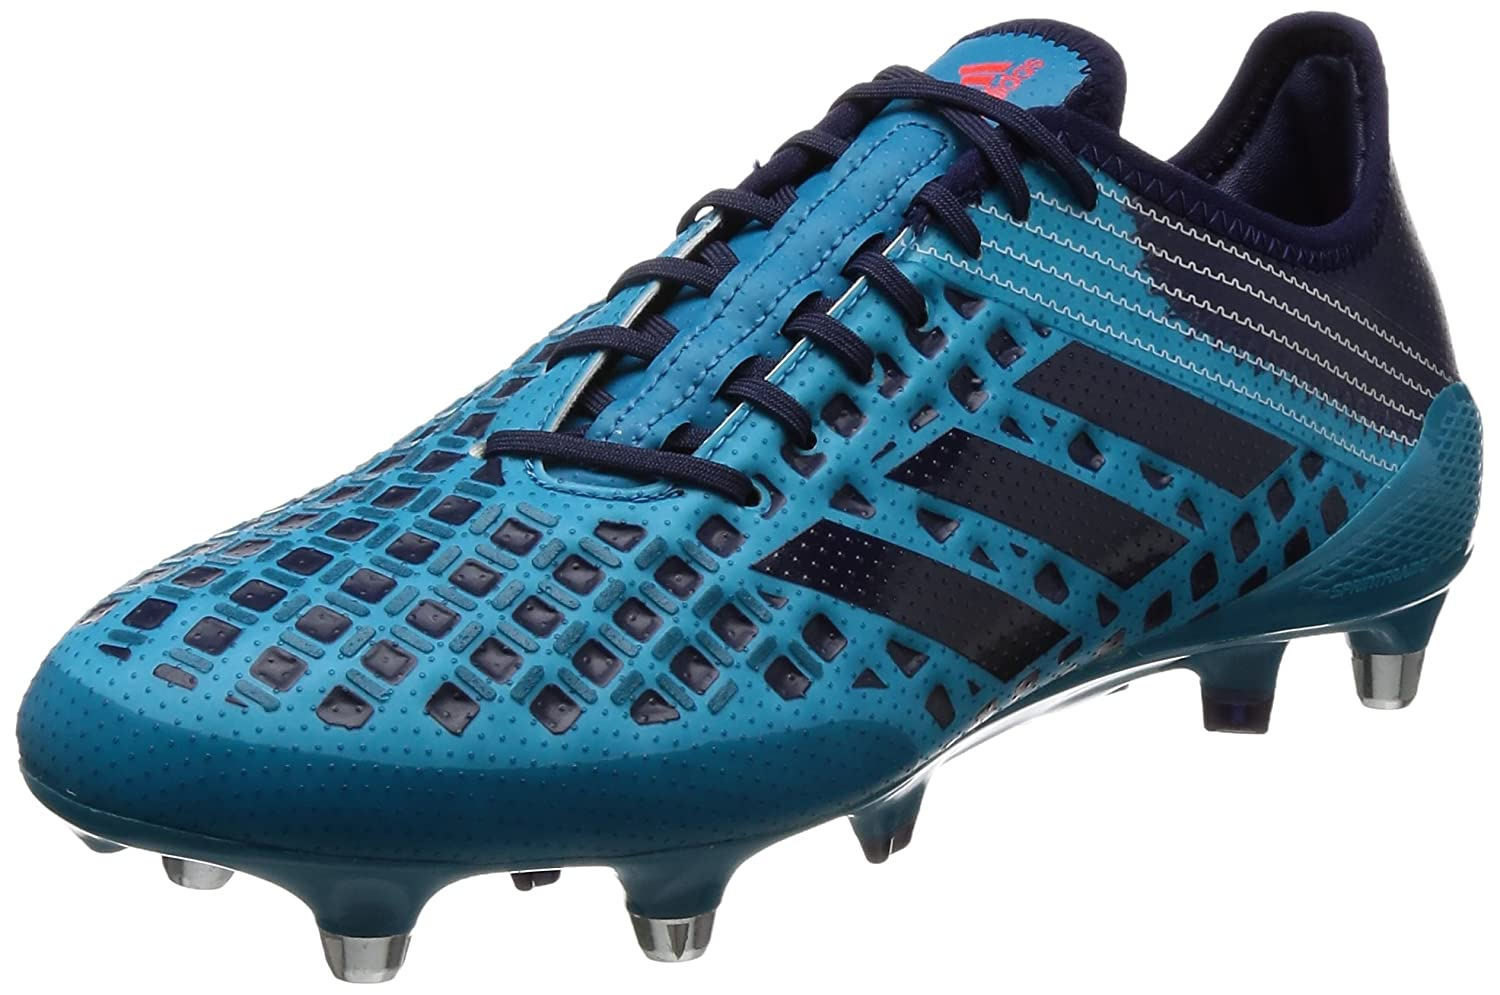 quality design 13119 b8957 adidas Predator Malice SG, Chaussures de Rugby Homme  Amazon.fr  Chaussures  et Sacs